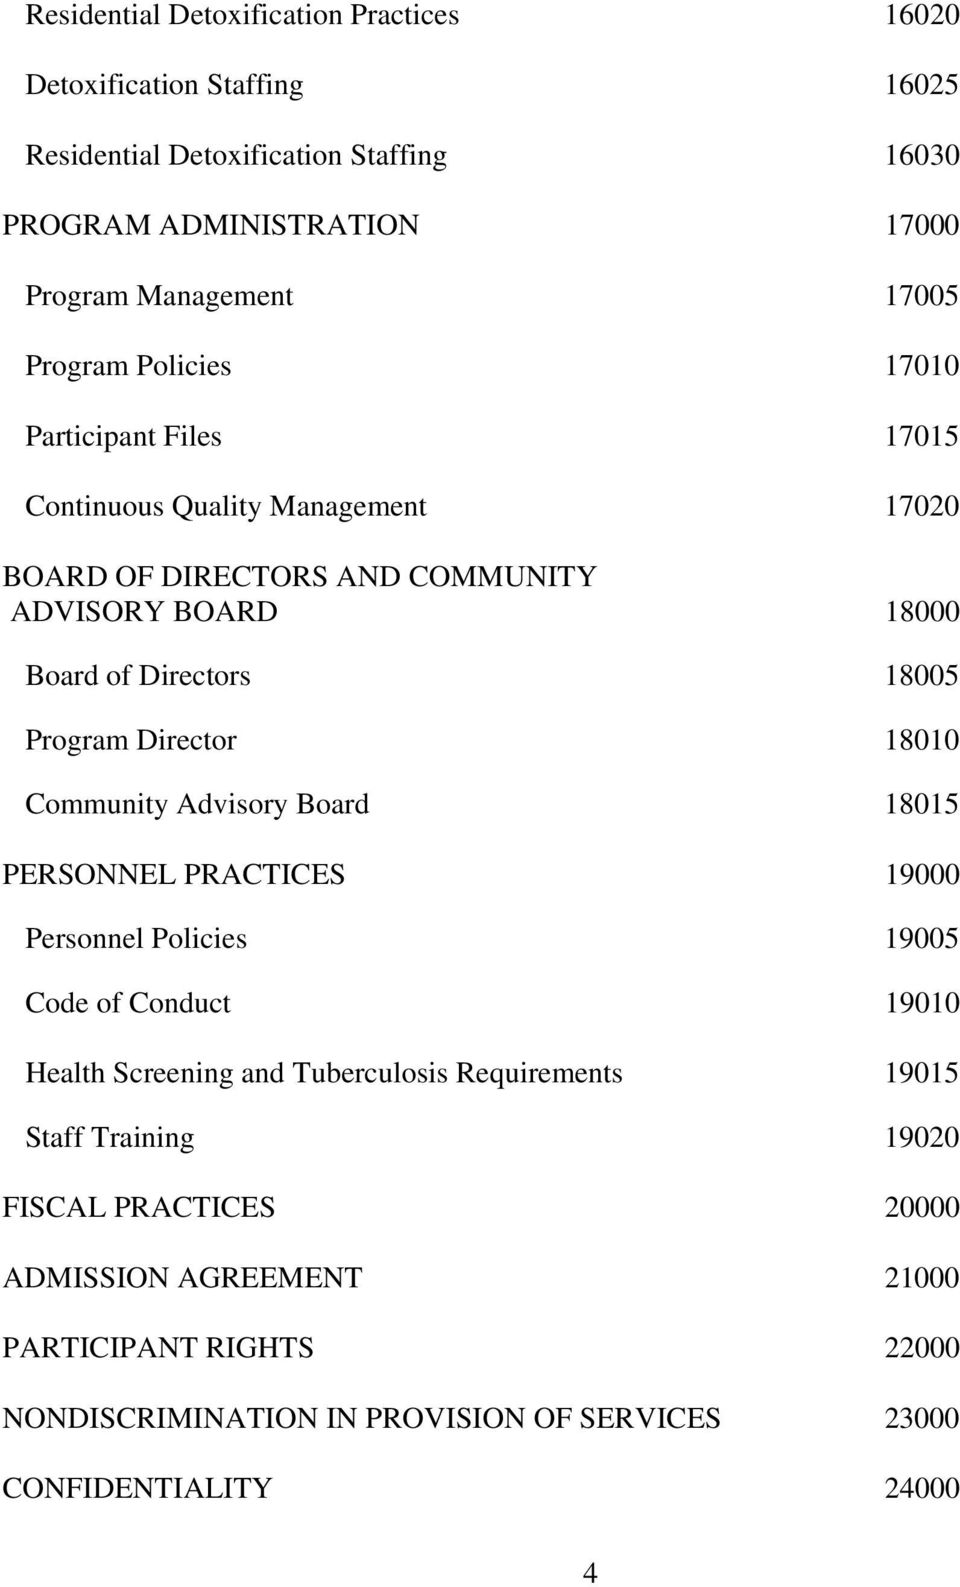 Director 18010 Community Advisory Board 18015 PERSONNEL PRACTICES 19000 Personnel Policies 19005 Code of Conduct 19010 Health Screening and Tuberculosis Requirements